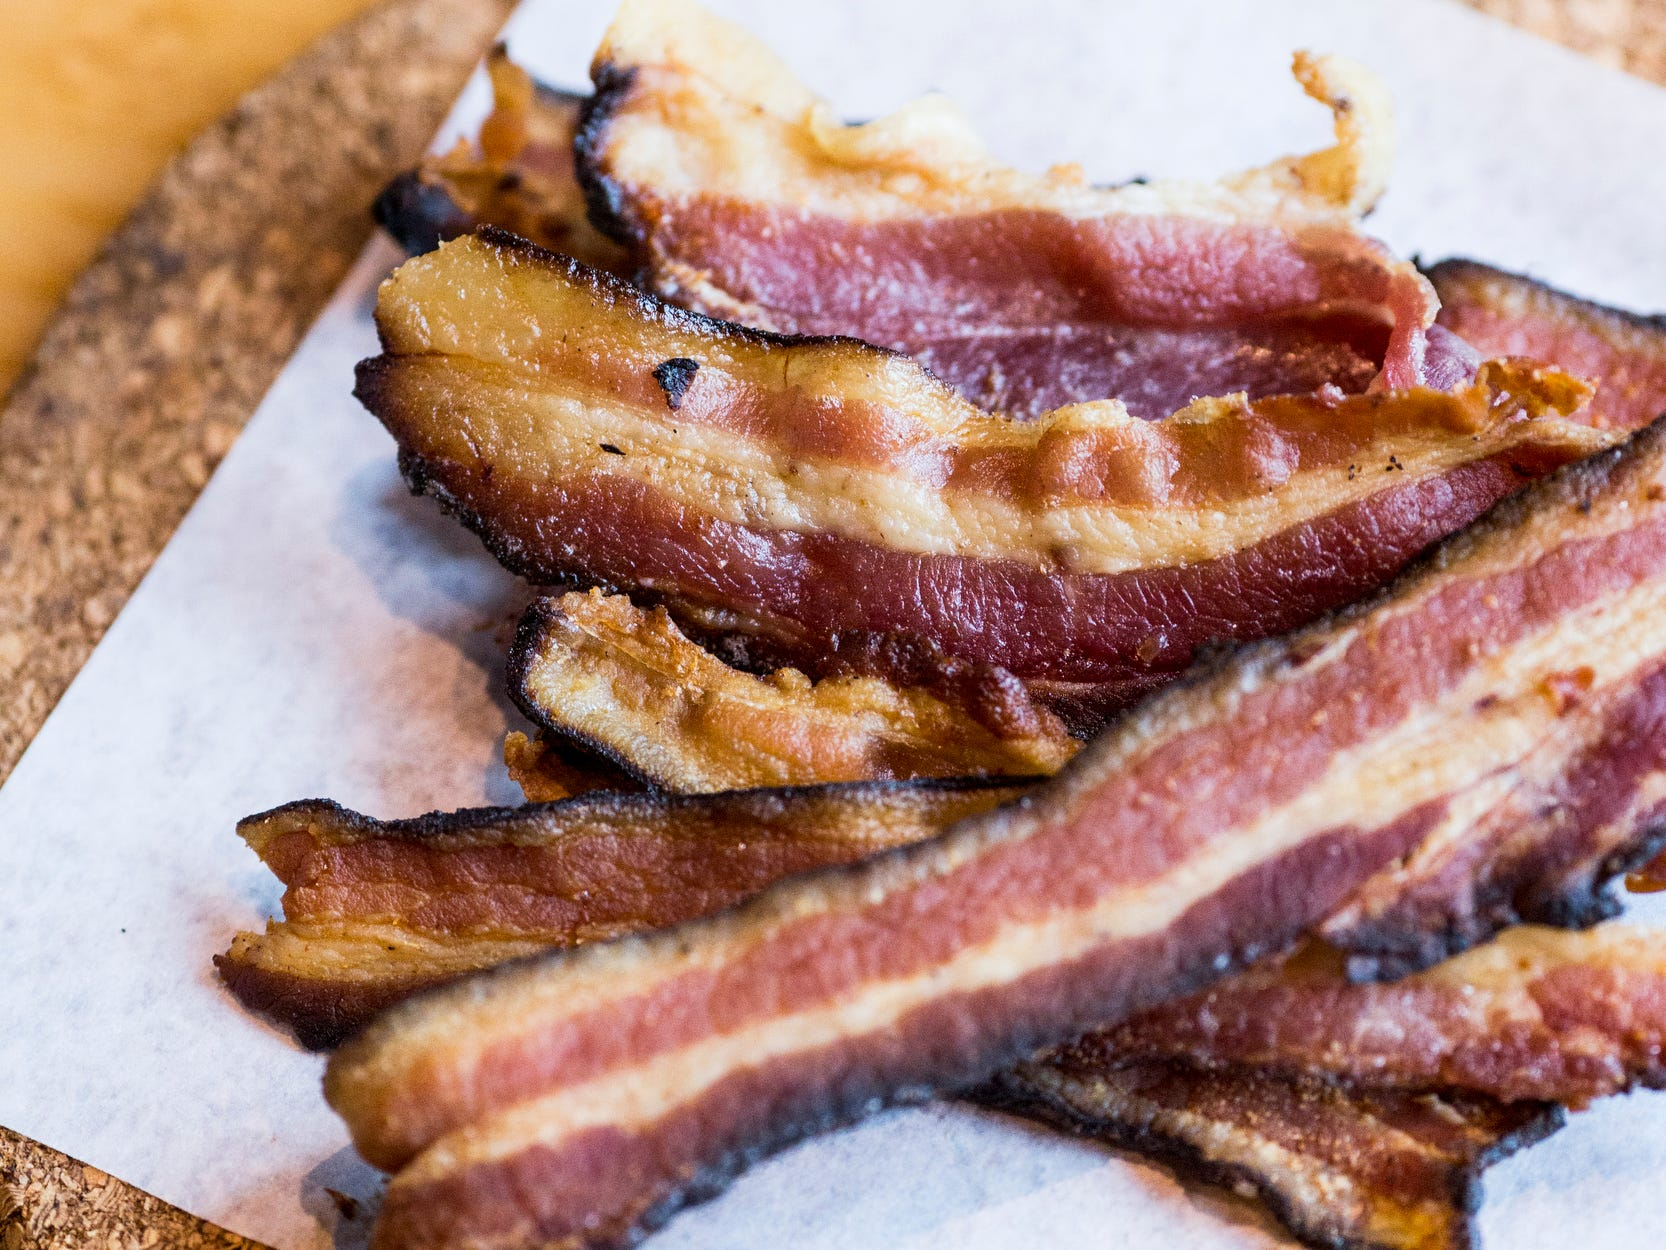 February 10, 2019 - House bacon with brown sugar and hickory smoke is available during Sunday brunch at PO Press Public House & Provisions in Collierville. PO Press Public House & Provisions is located at 148 N Main St. in Collierville.